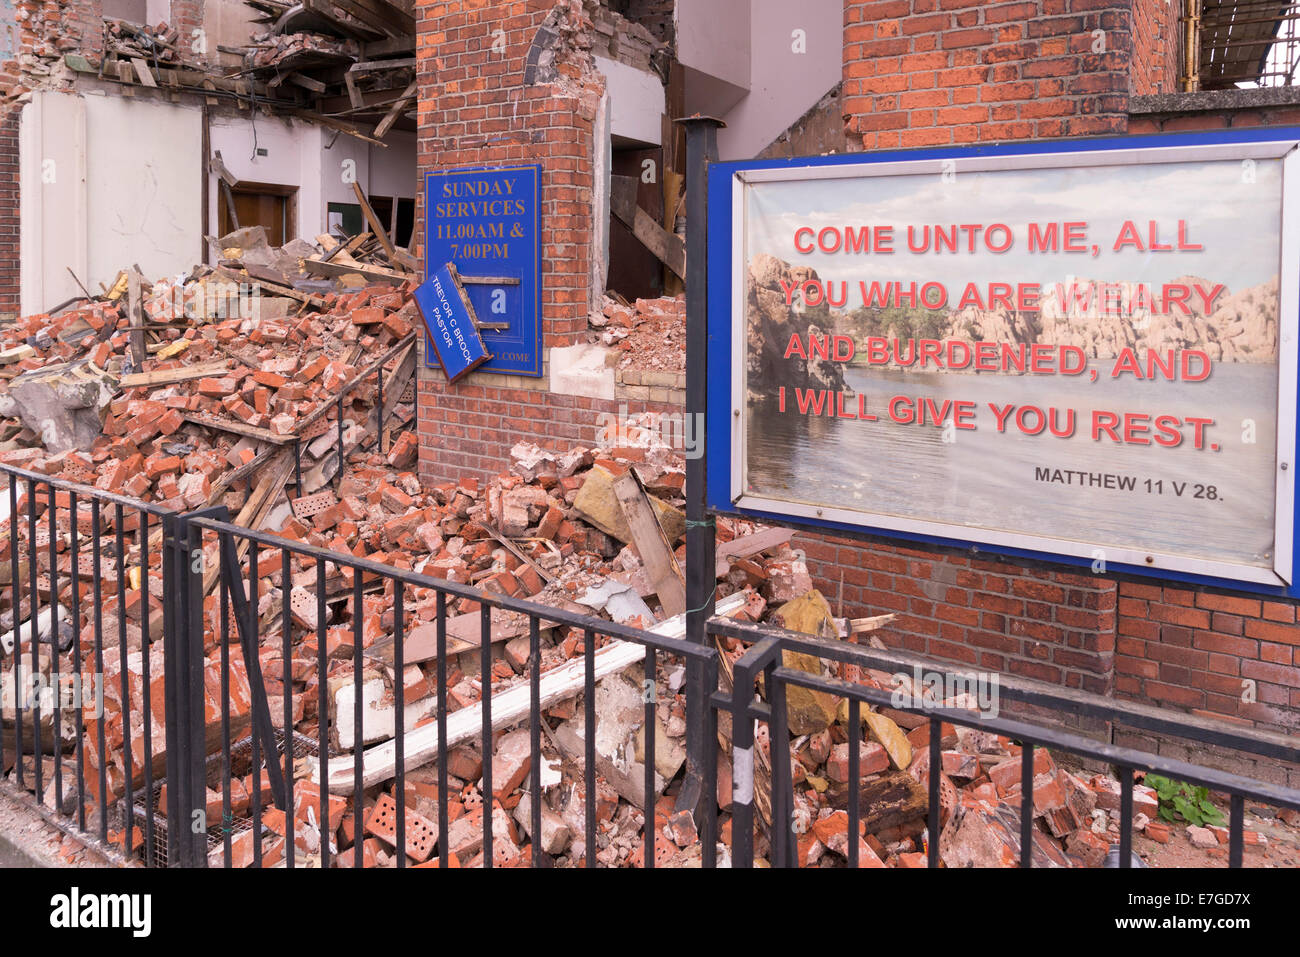 church being torn down in Belfast, 12.8.2014 - Stock Image